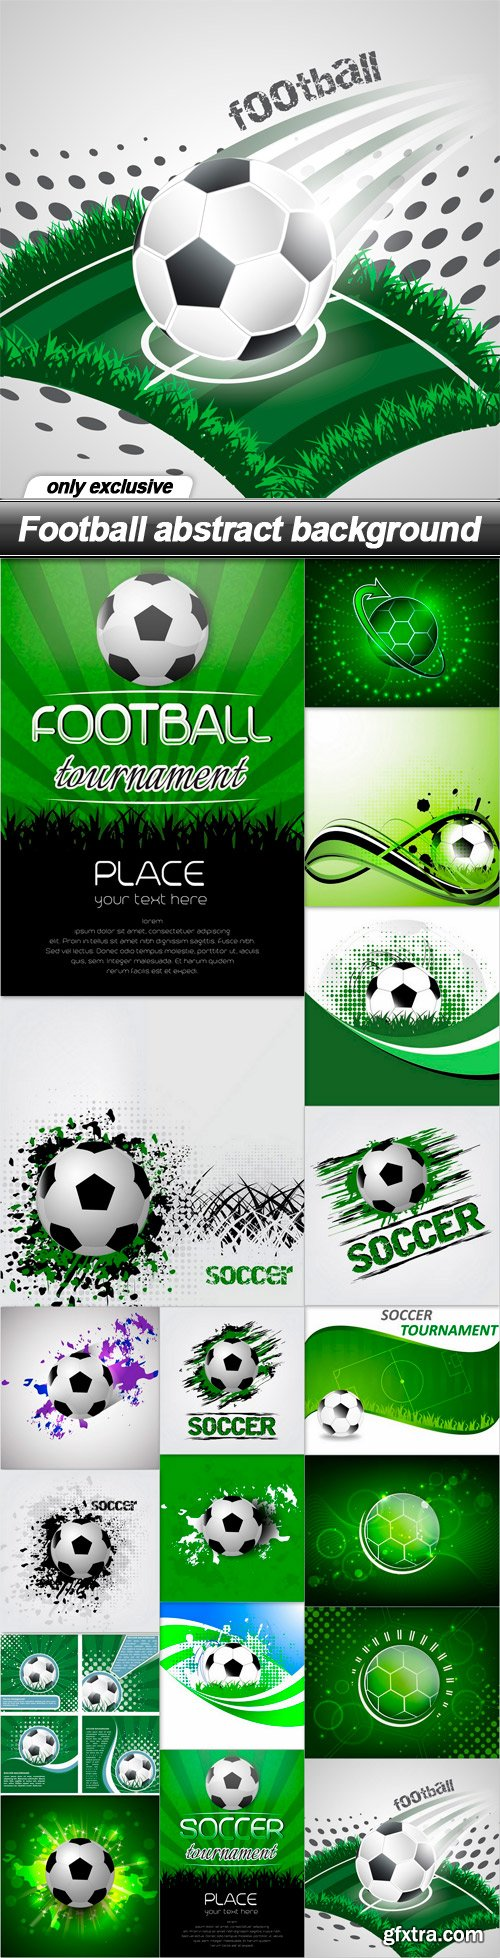 Football abstract background - 18 EPS